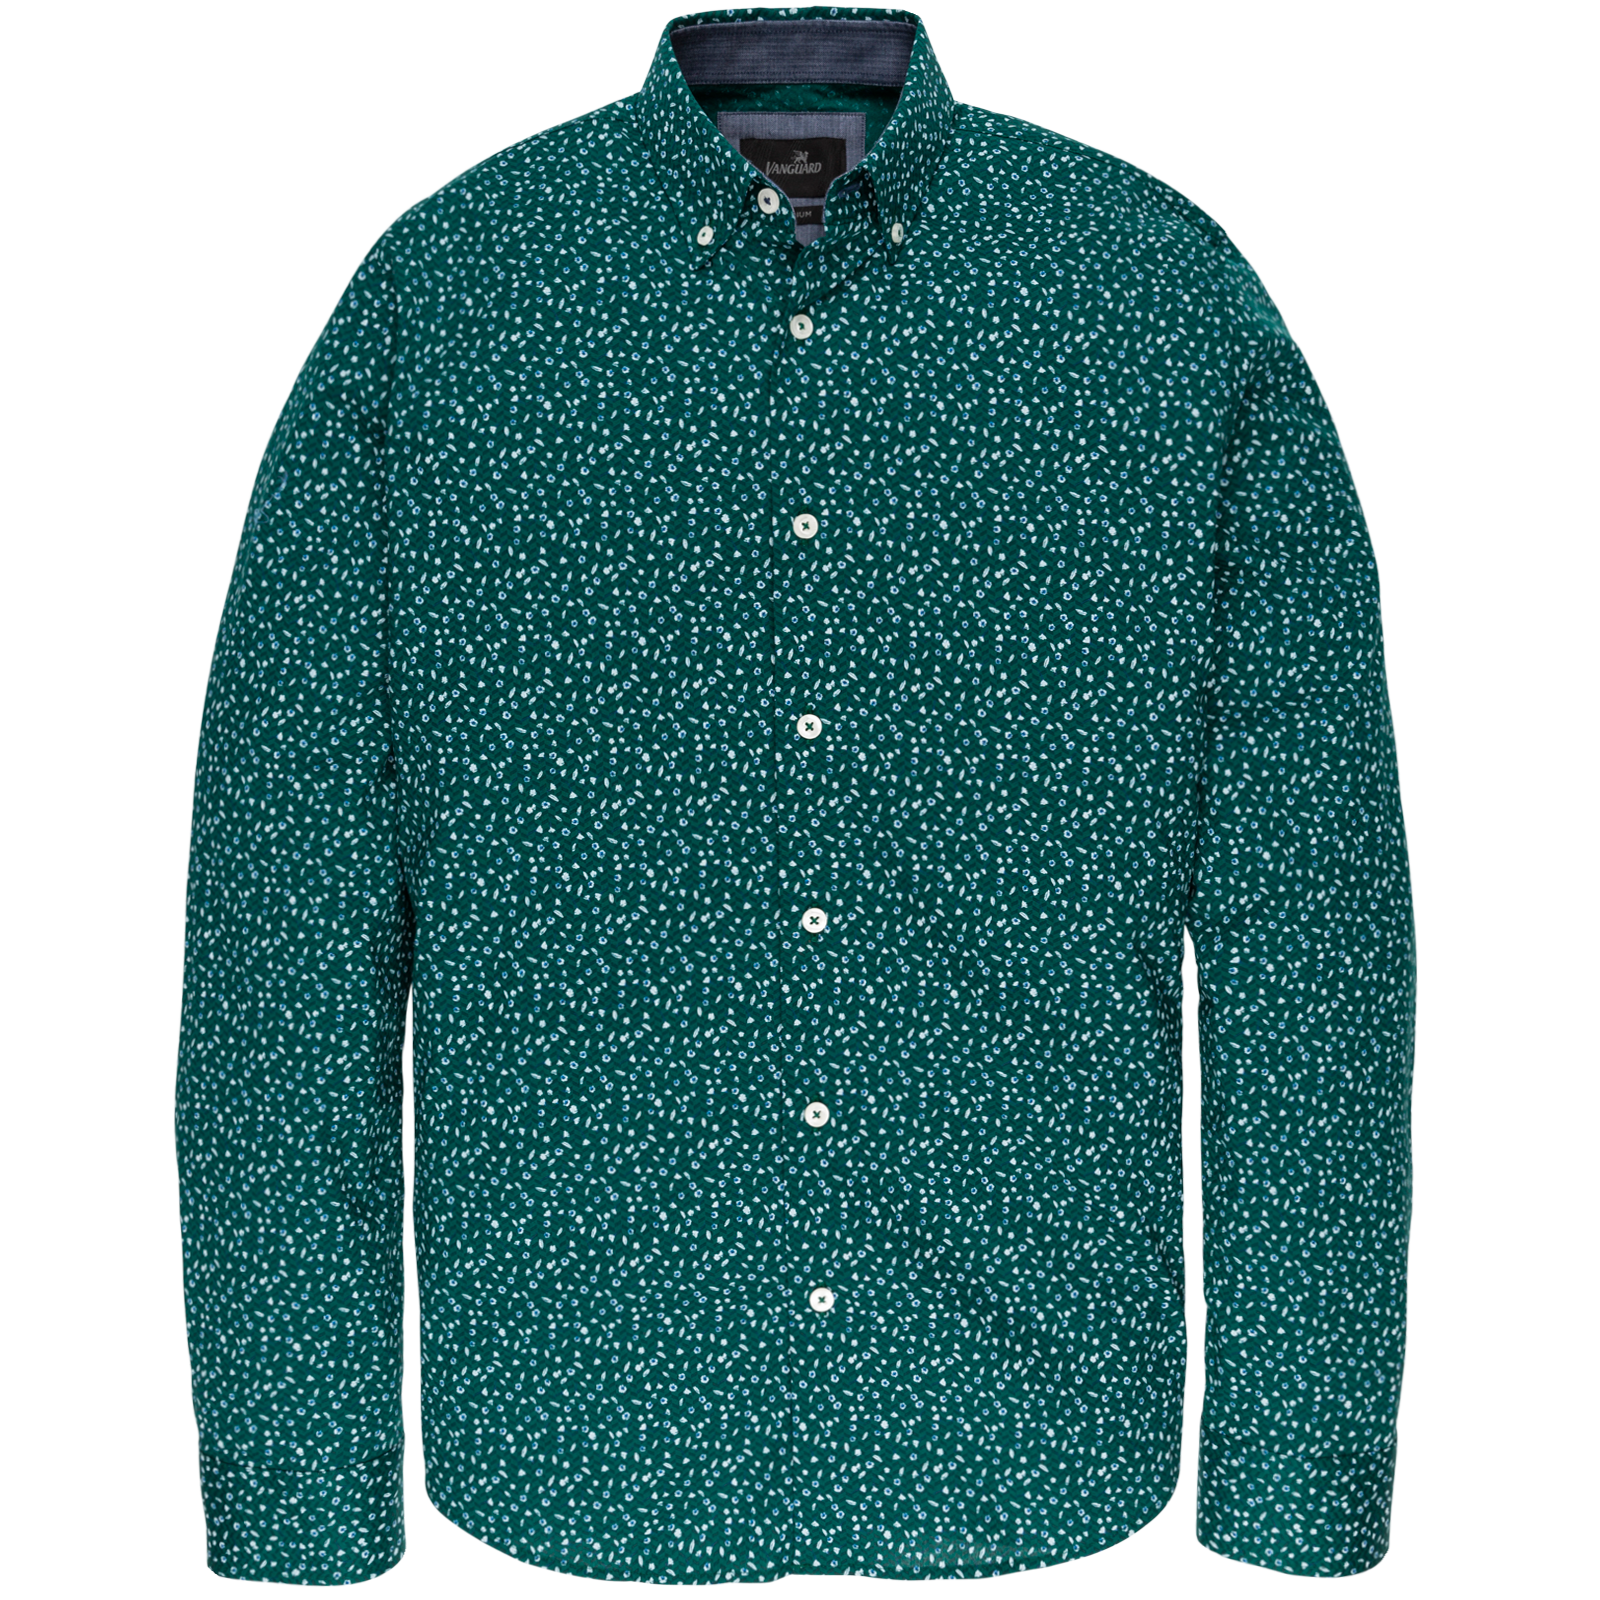 Vanguard VSI197400 6064 Vanguard long sleeve shirt cf print Alpine Green